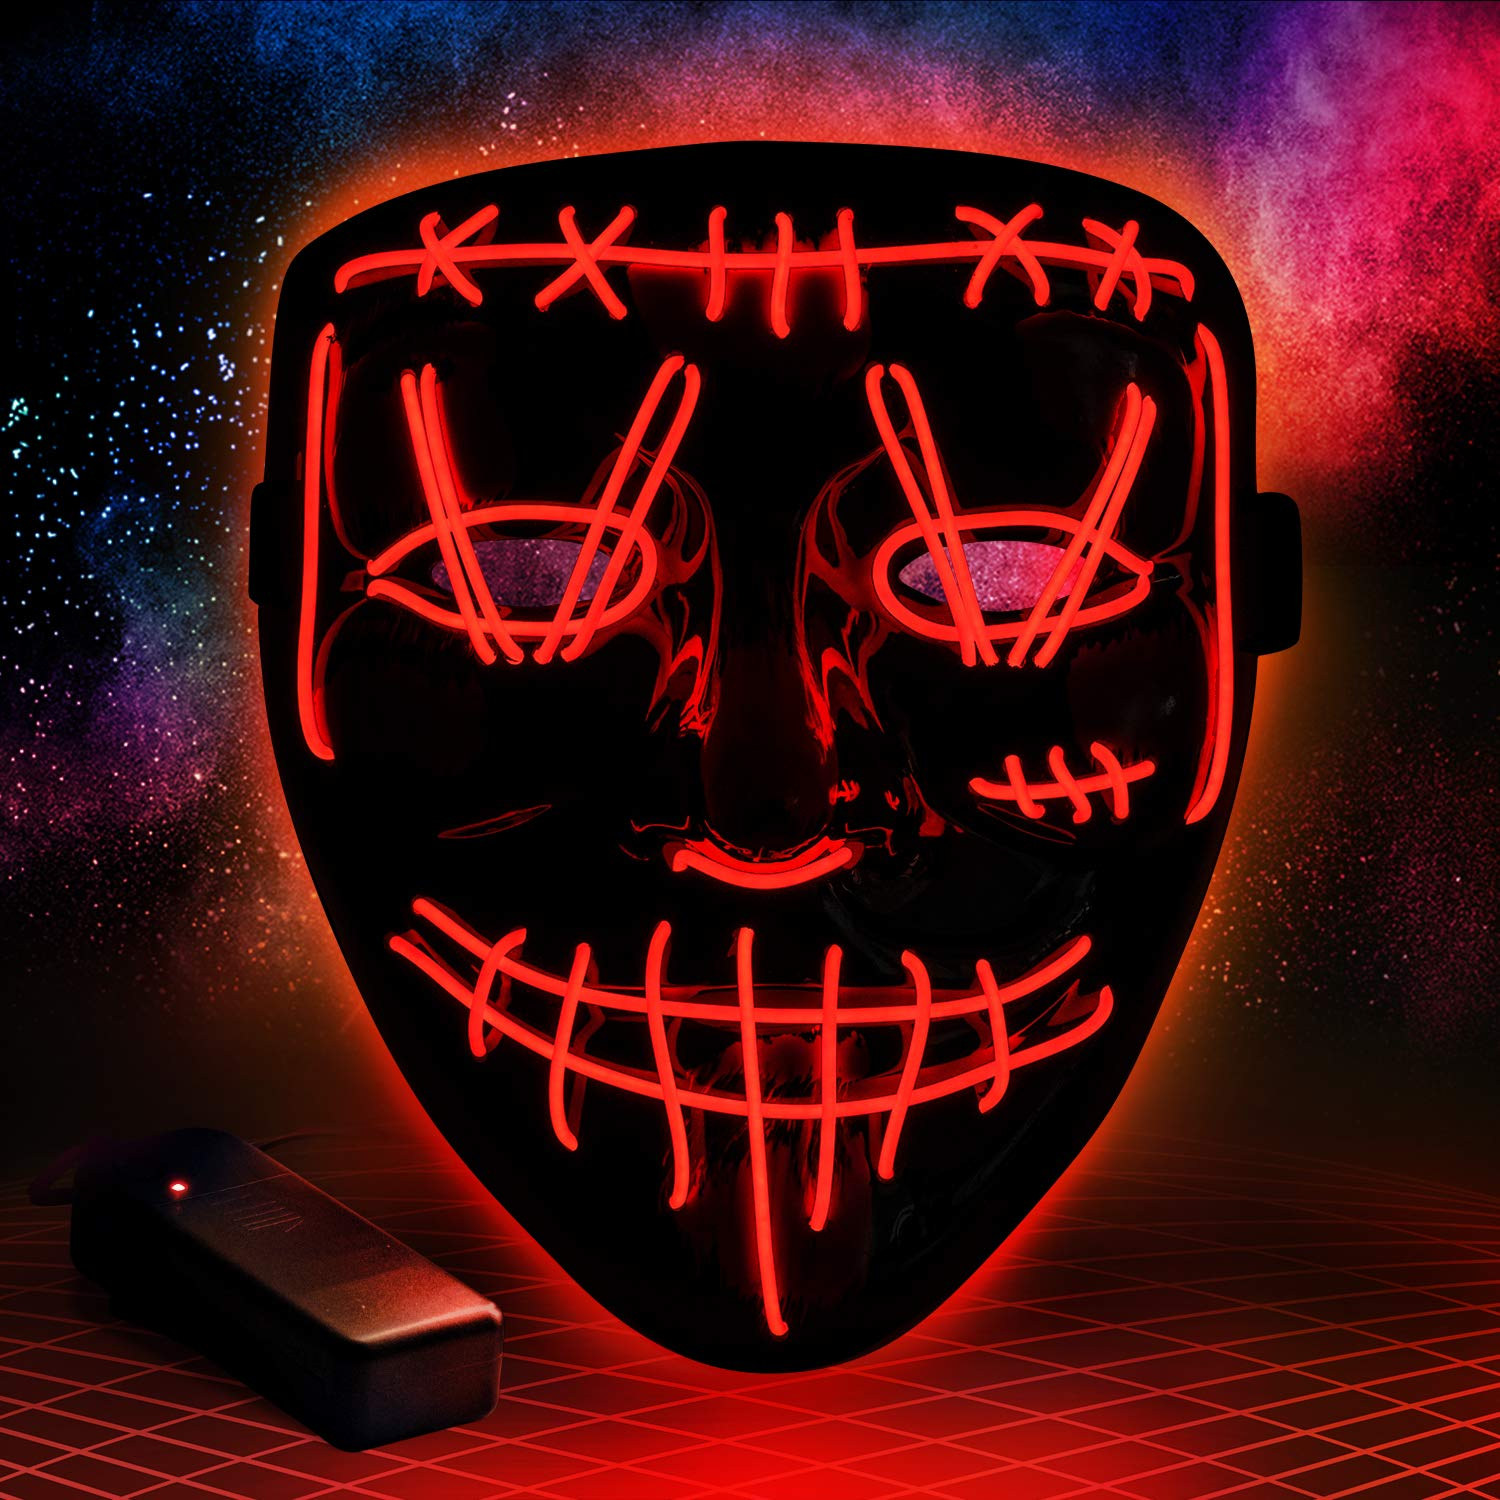 Halloween Led Purge Mask Light Up Scary Mask EL Wire Cool Costume Festival Parties Raves Unisex by SIPU